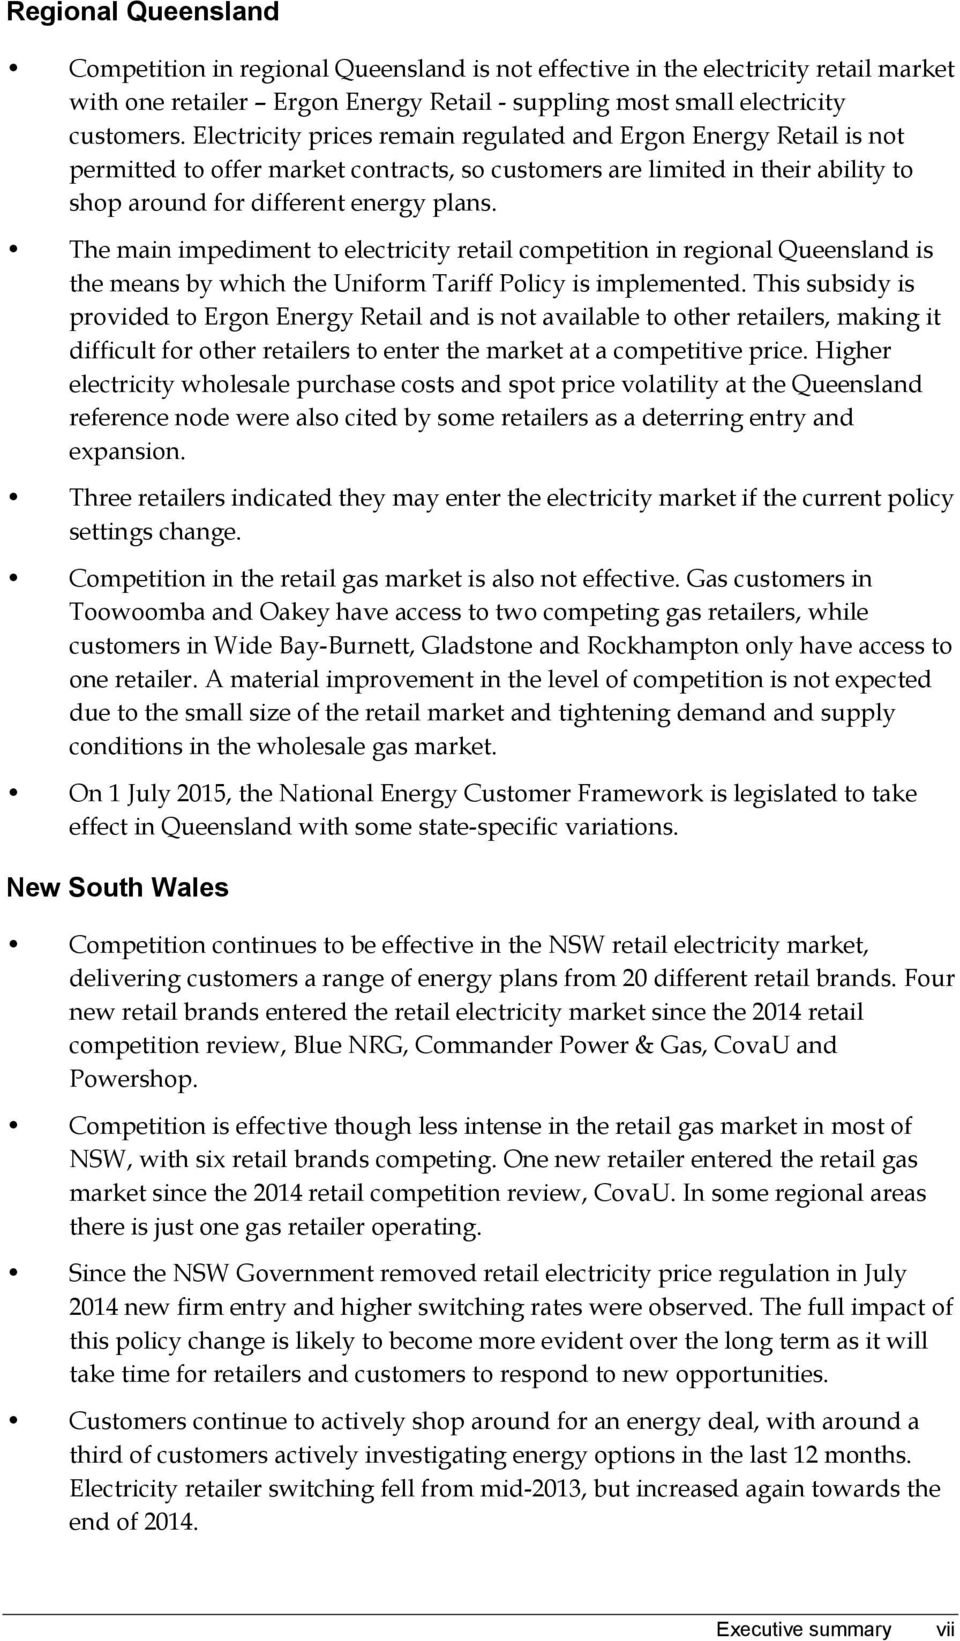 The main impediment to electricity retail competition in regional Queensland is the means by which the Uniform Tariff Policy is implemented.